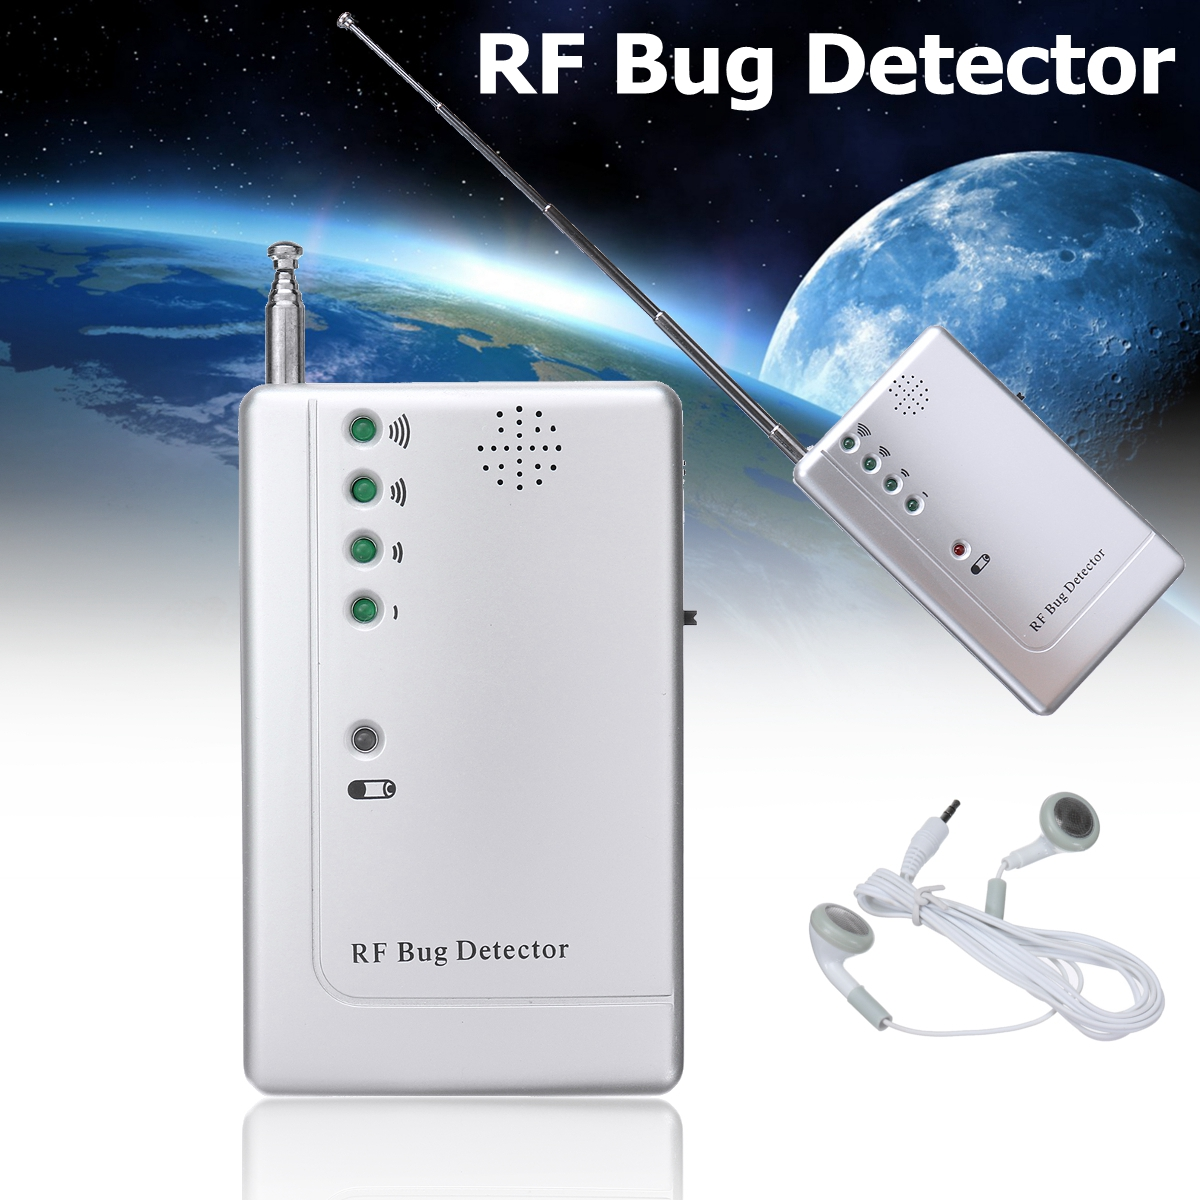 RF Scanner Detector Bug Camera Bug Detector WiFi Signal GPS GSM Radio Phone Device Finder Private Protect Security летние шины bridgestone 195 60 r15 88h ecopia ep150